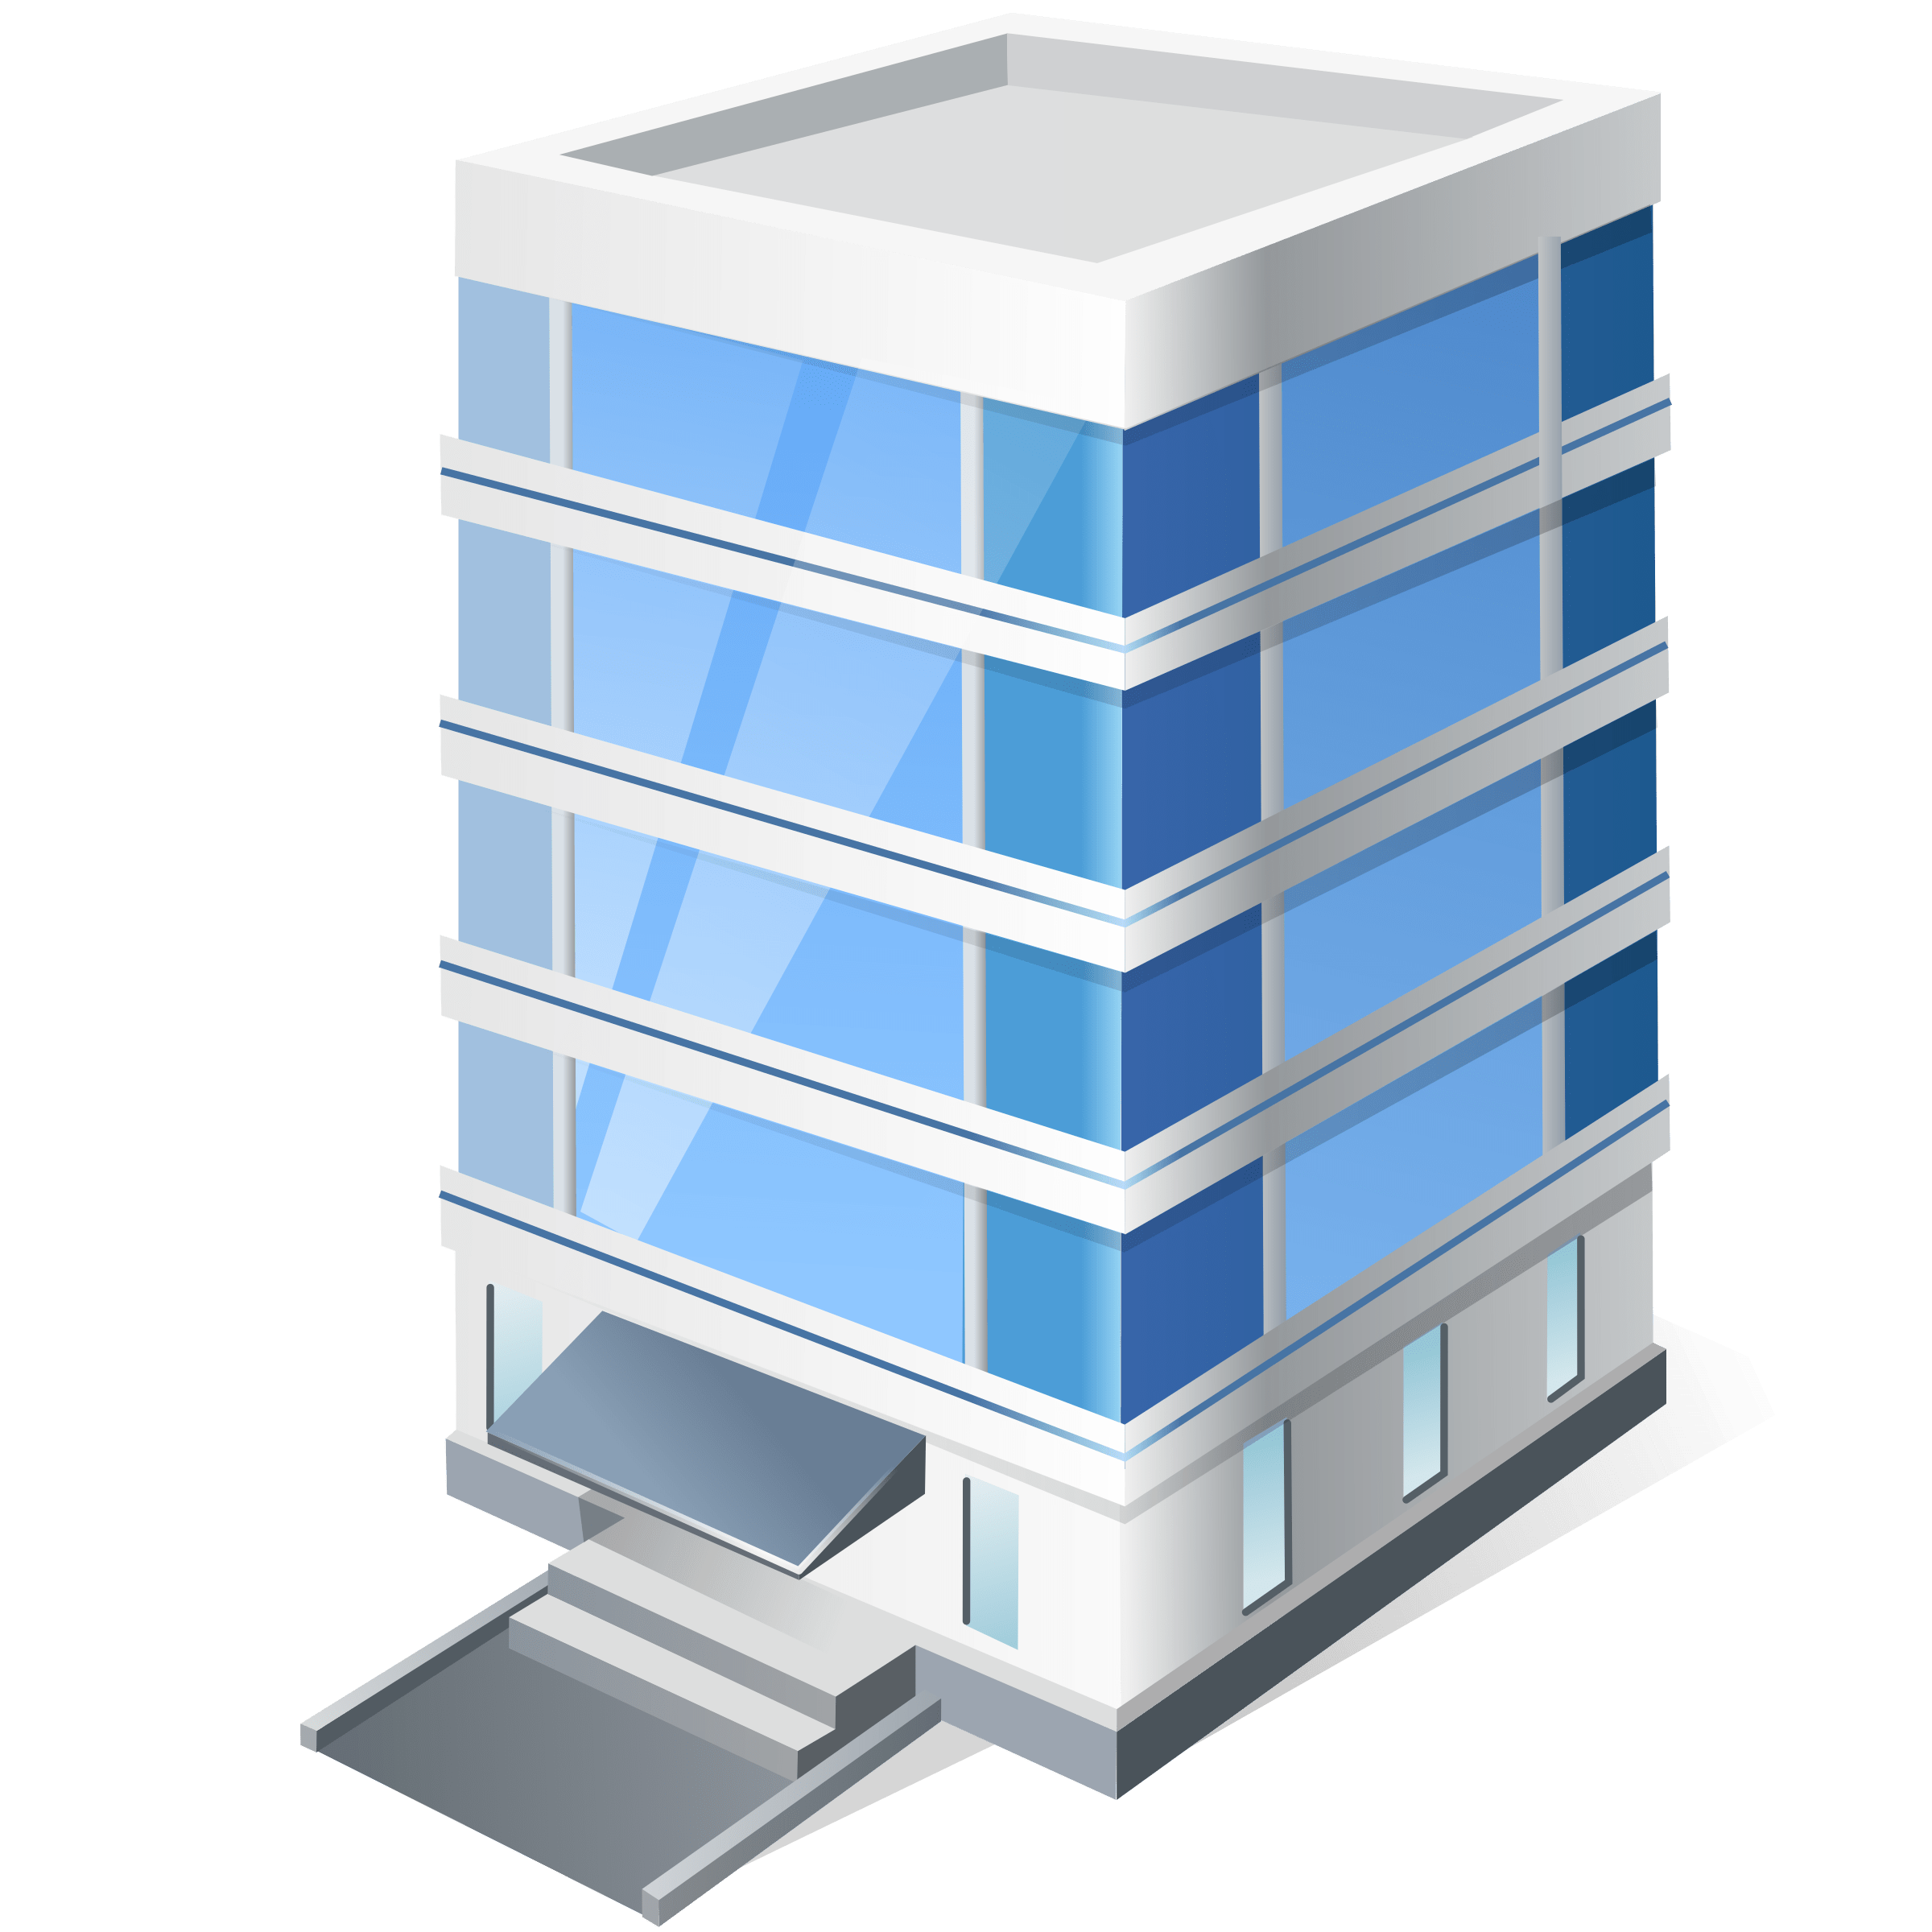 Office building clipart png clip library download Office Building Clipart transparent PNG - StickPNG clip library download